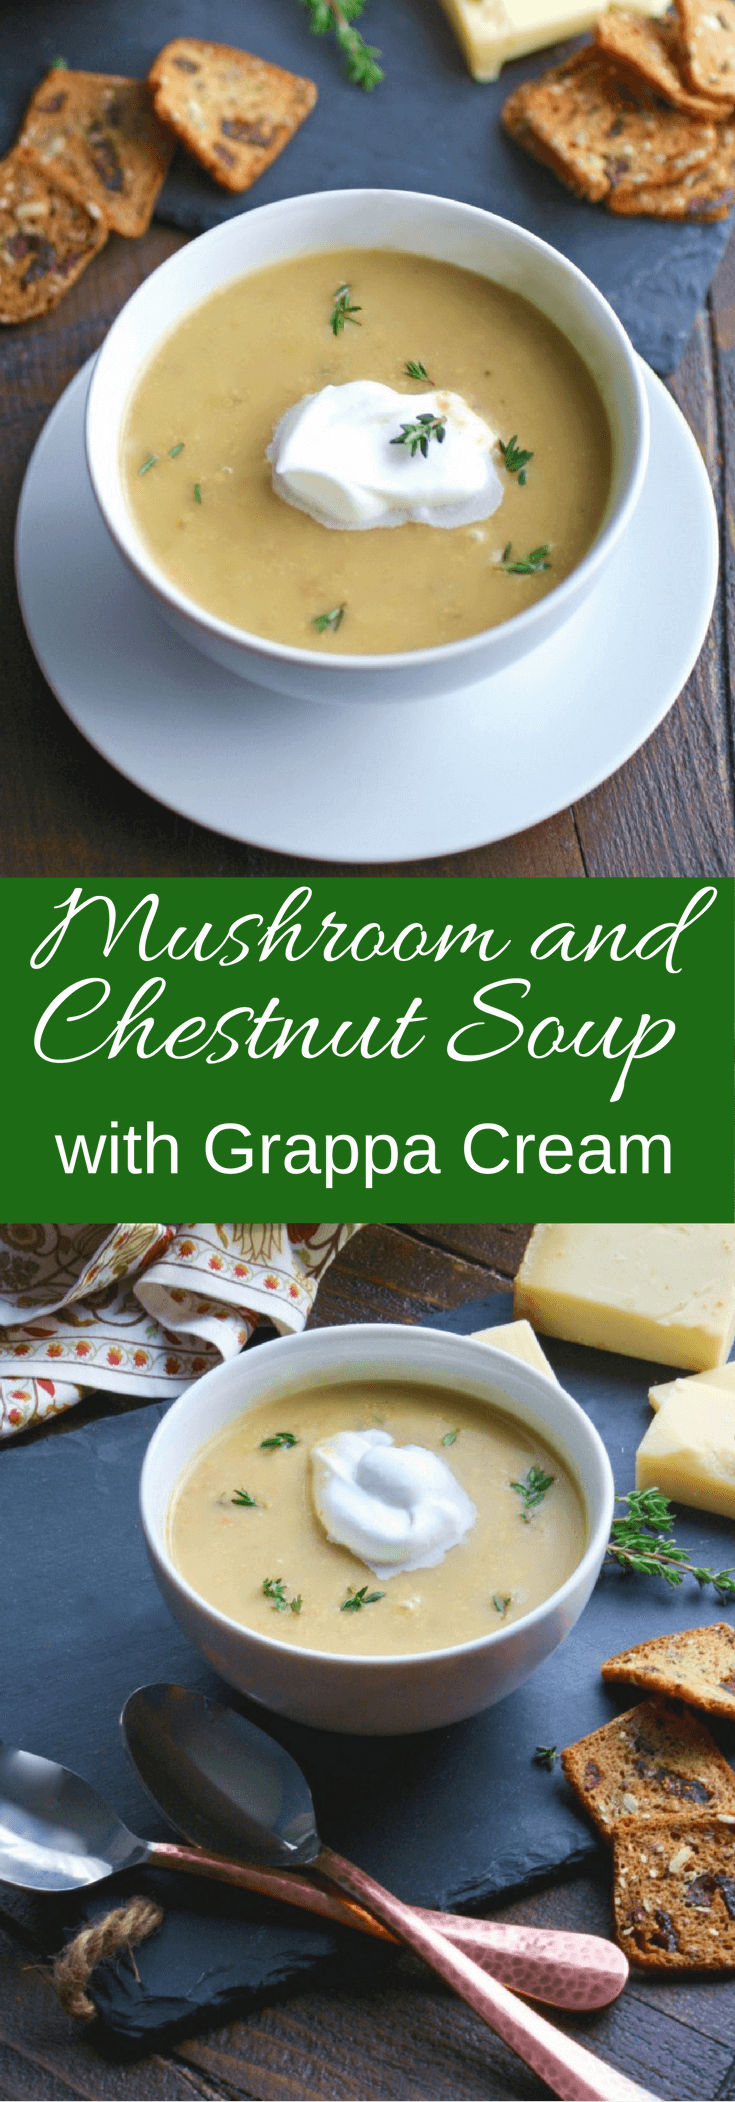 What a treat! Mushroom and Chestnut Soup with Grappa Cream is a flavorful soup fit for an elegant meal!